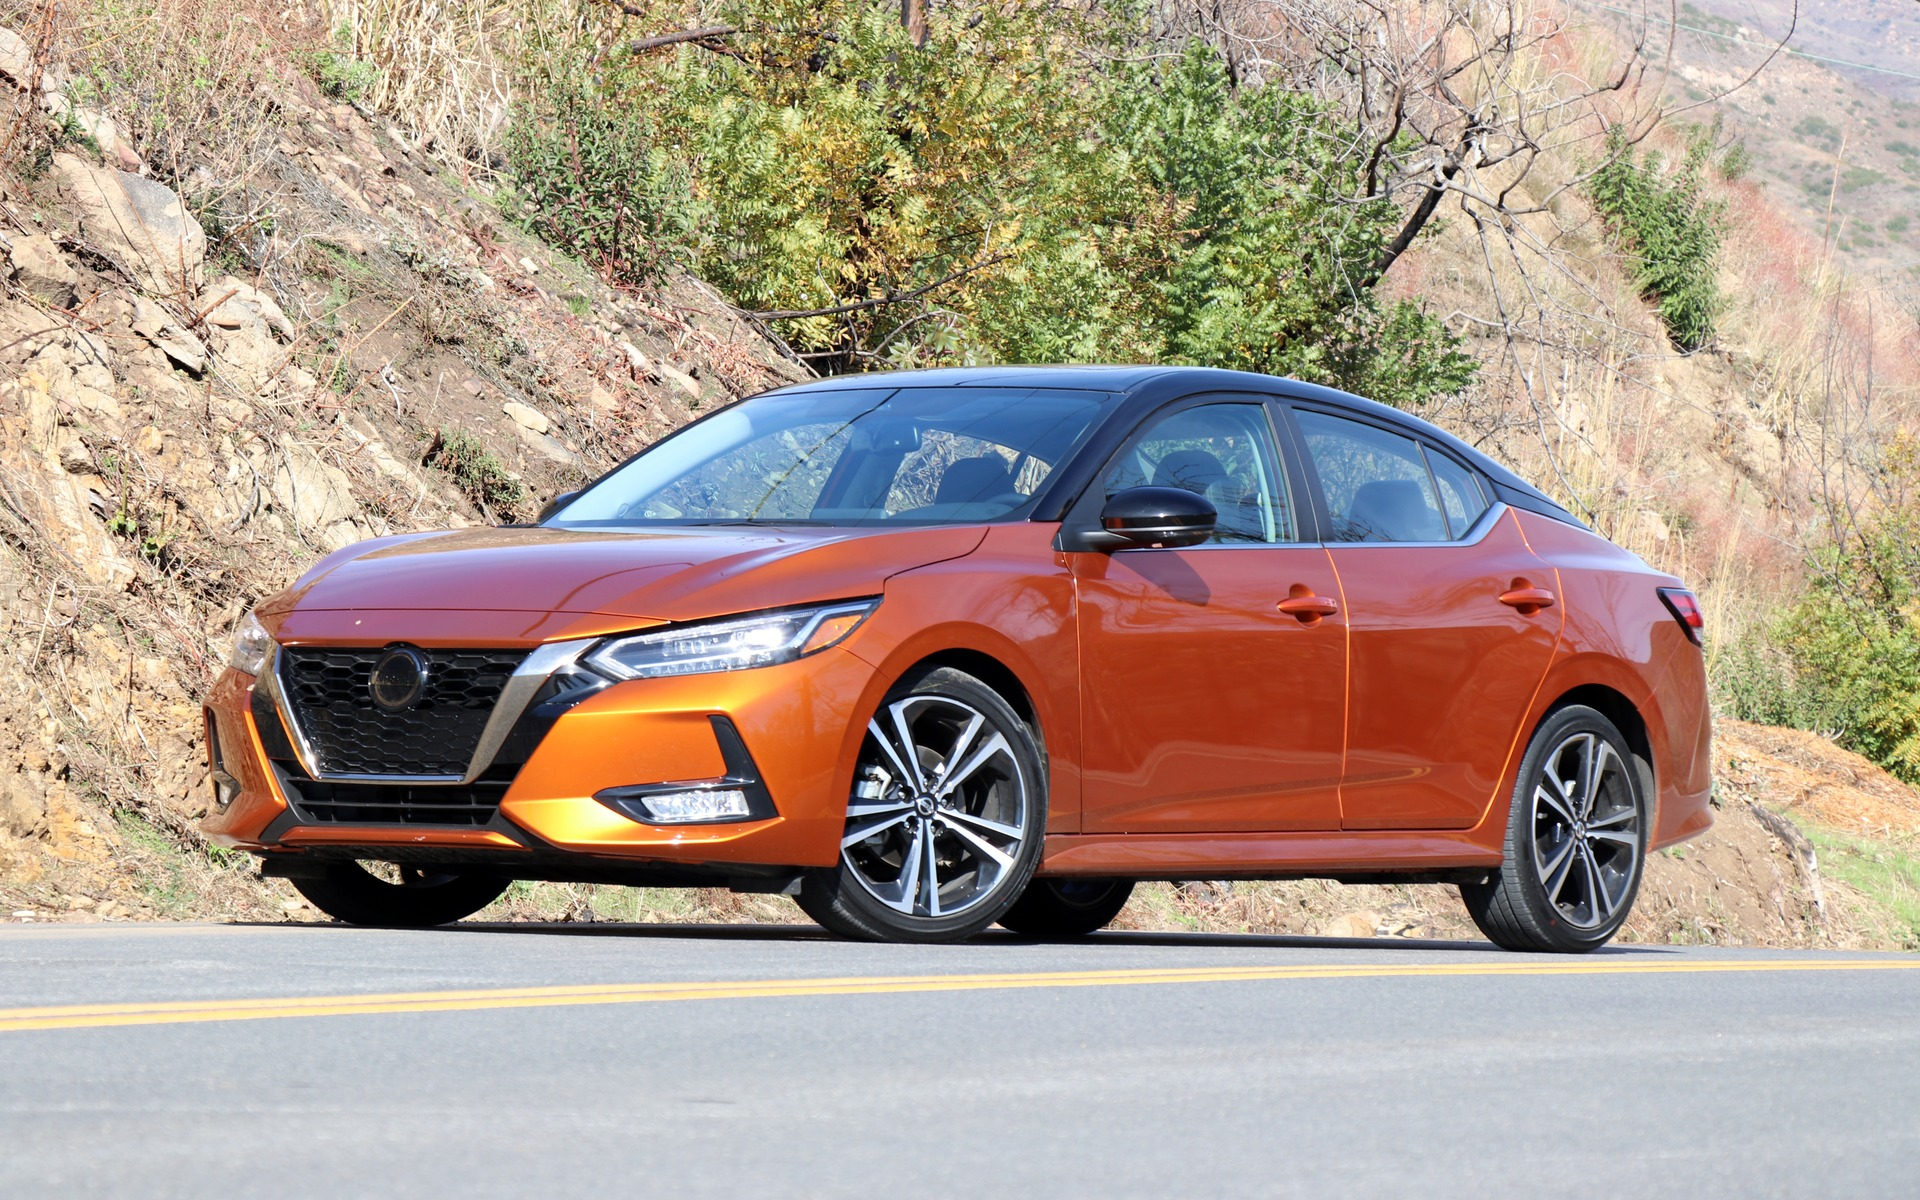 2020 Nissan Sentra Newly Armed And A Bit More Dangerous The Car Guide